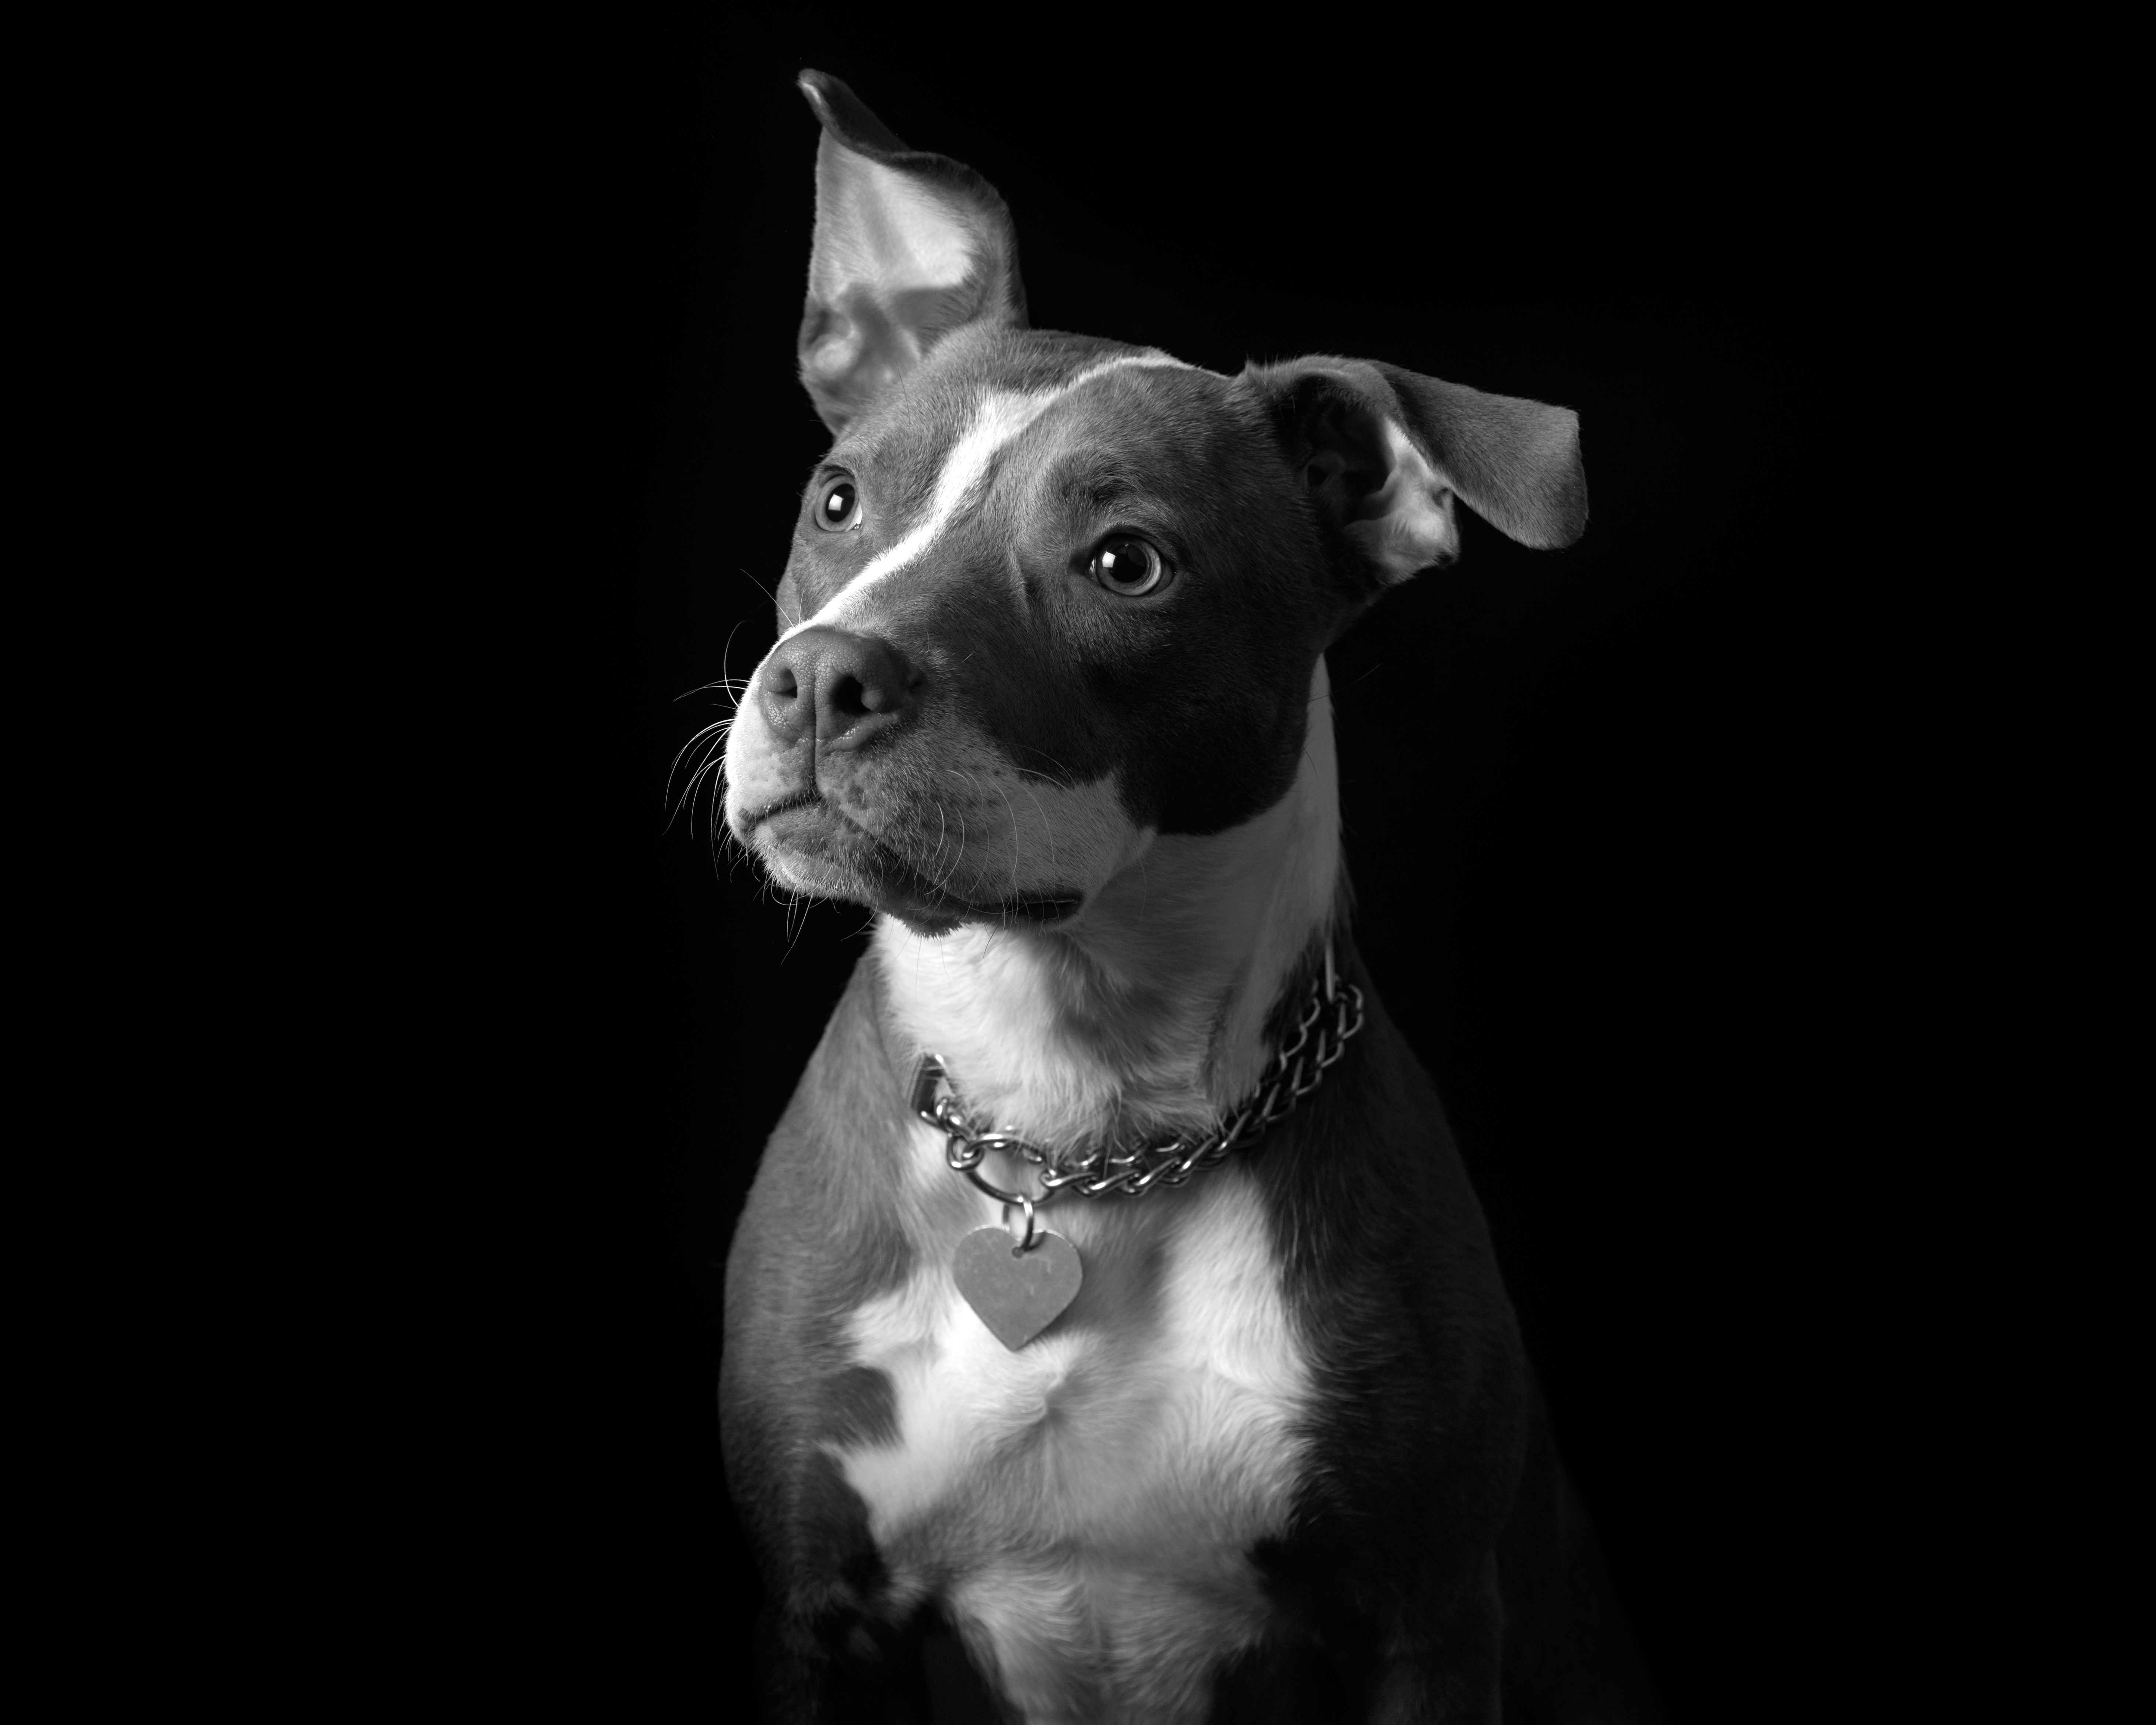 Intimate Mixed Breed Dog Puppy Dog Image Licensed